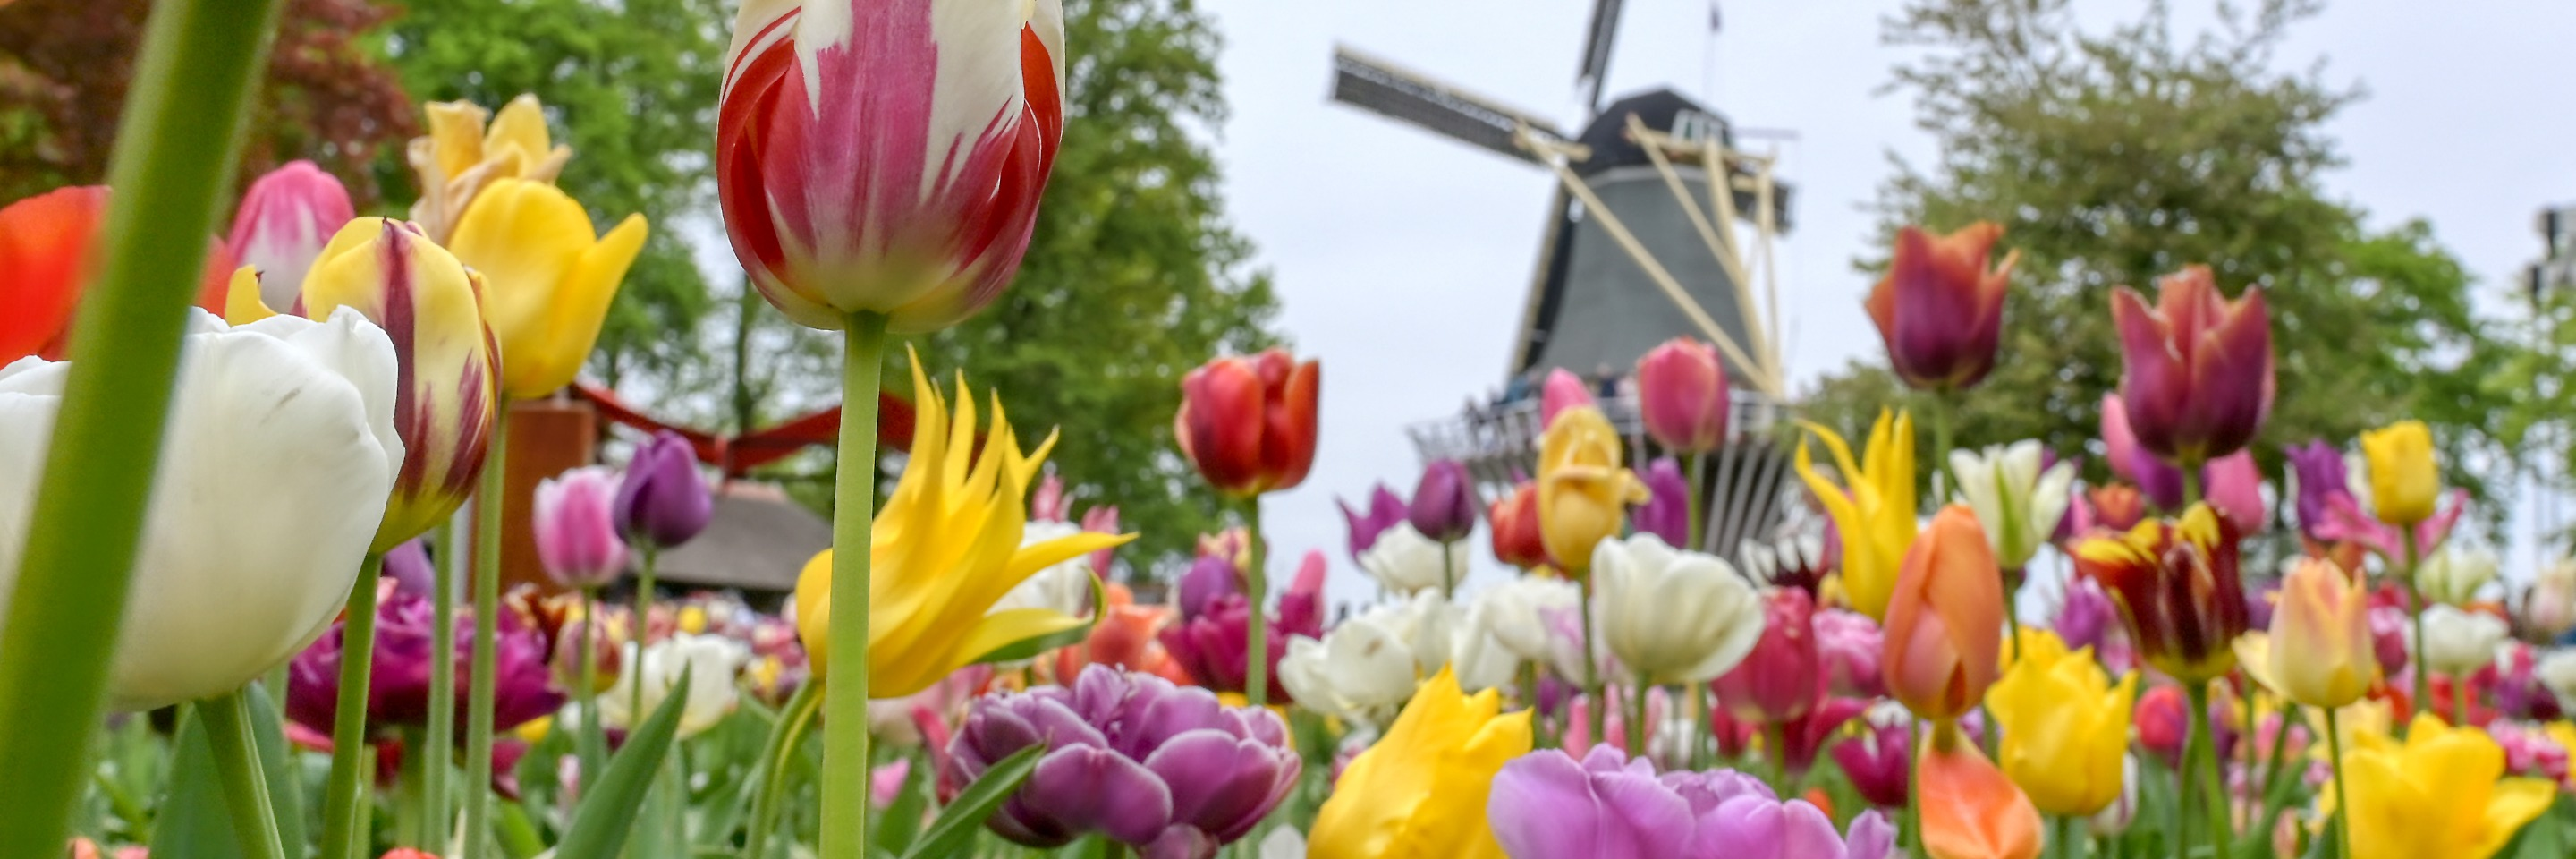 Tulip Time Cruise with 1 Night in Amsterdam for Garden & Nature Lovers